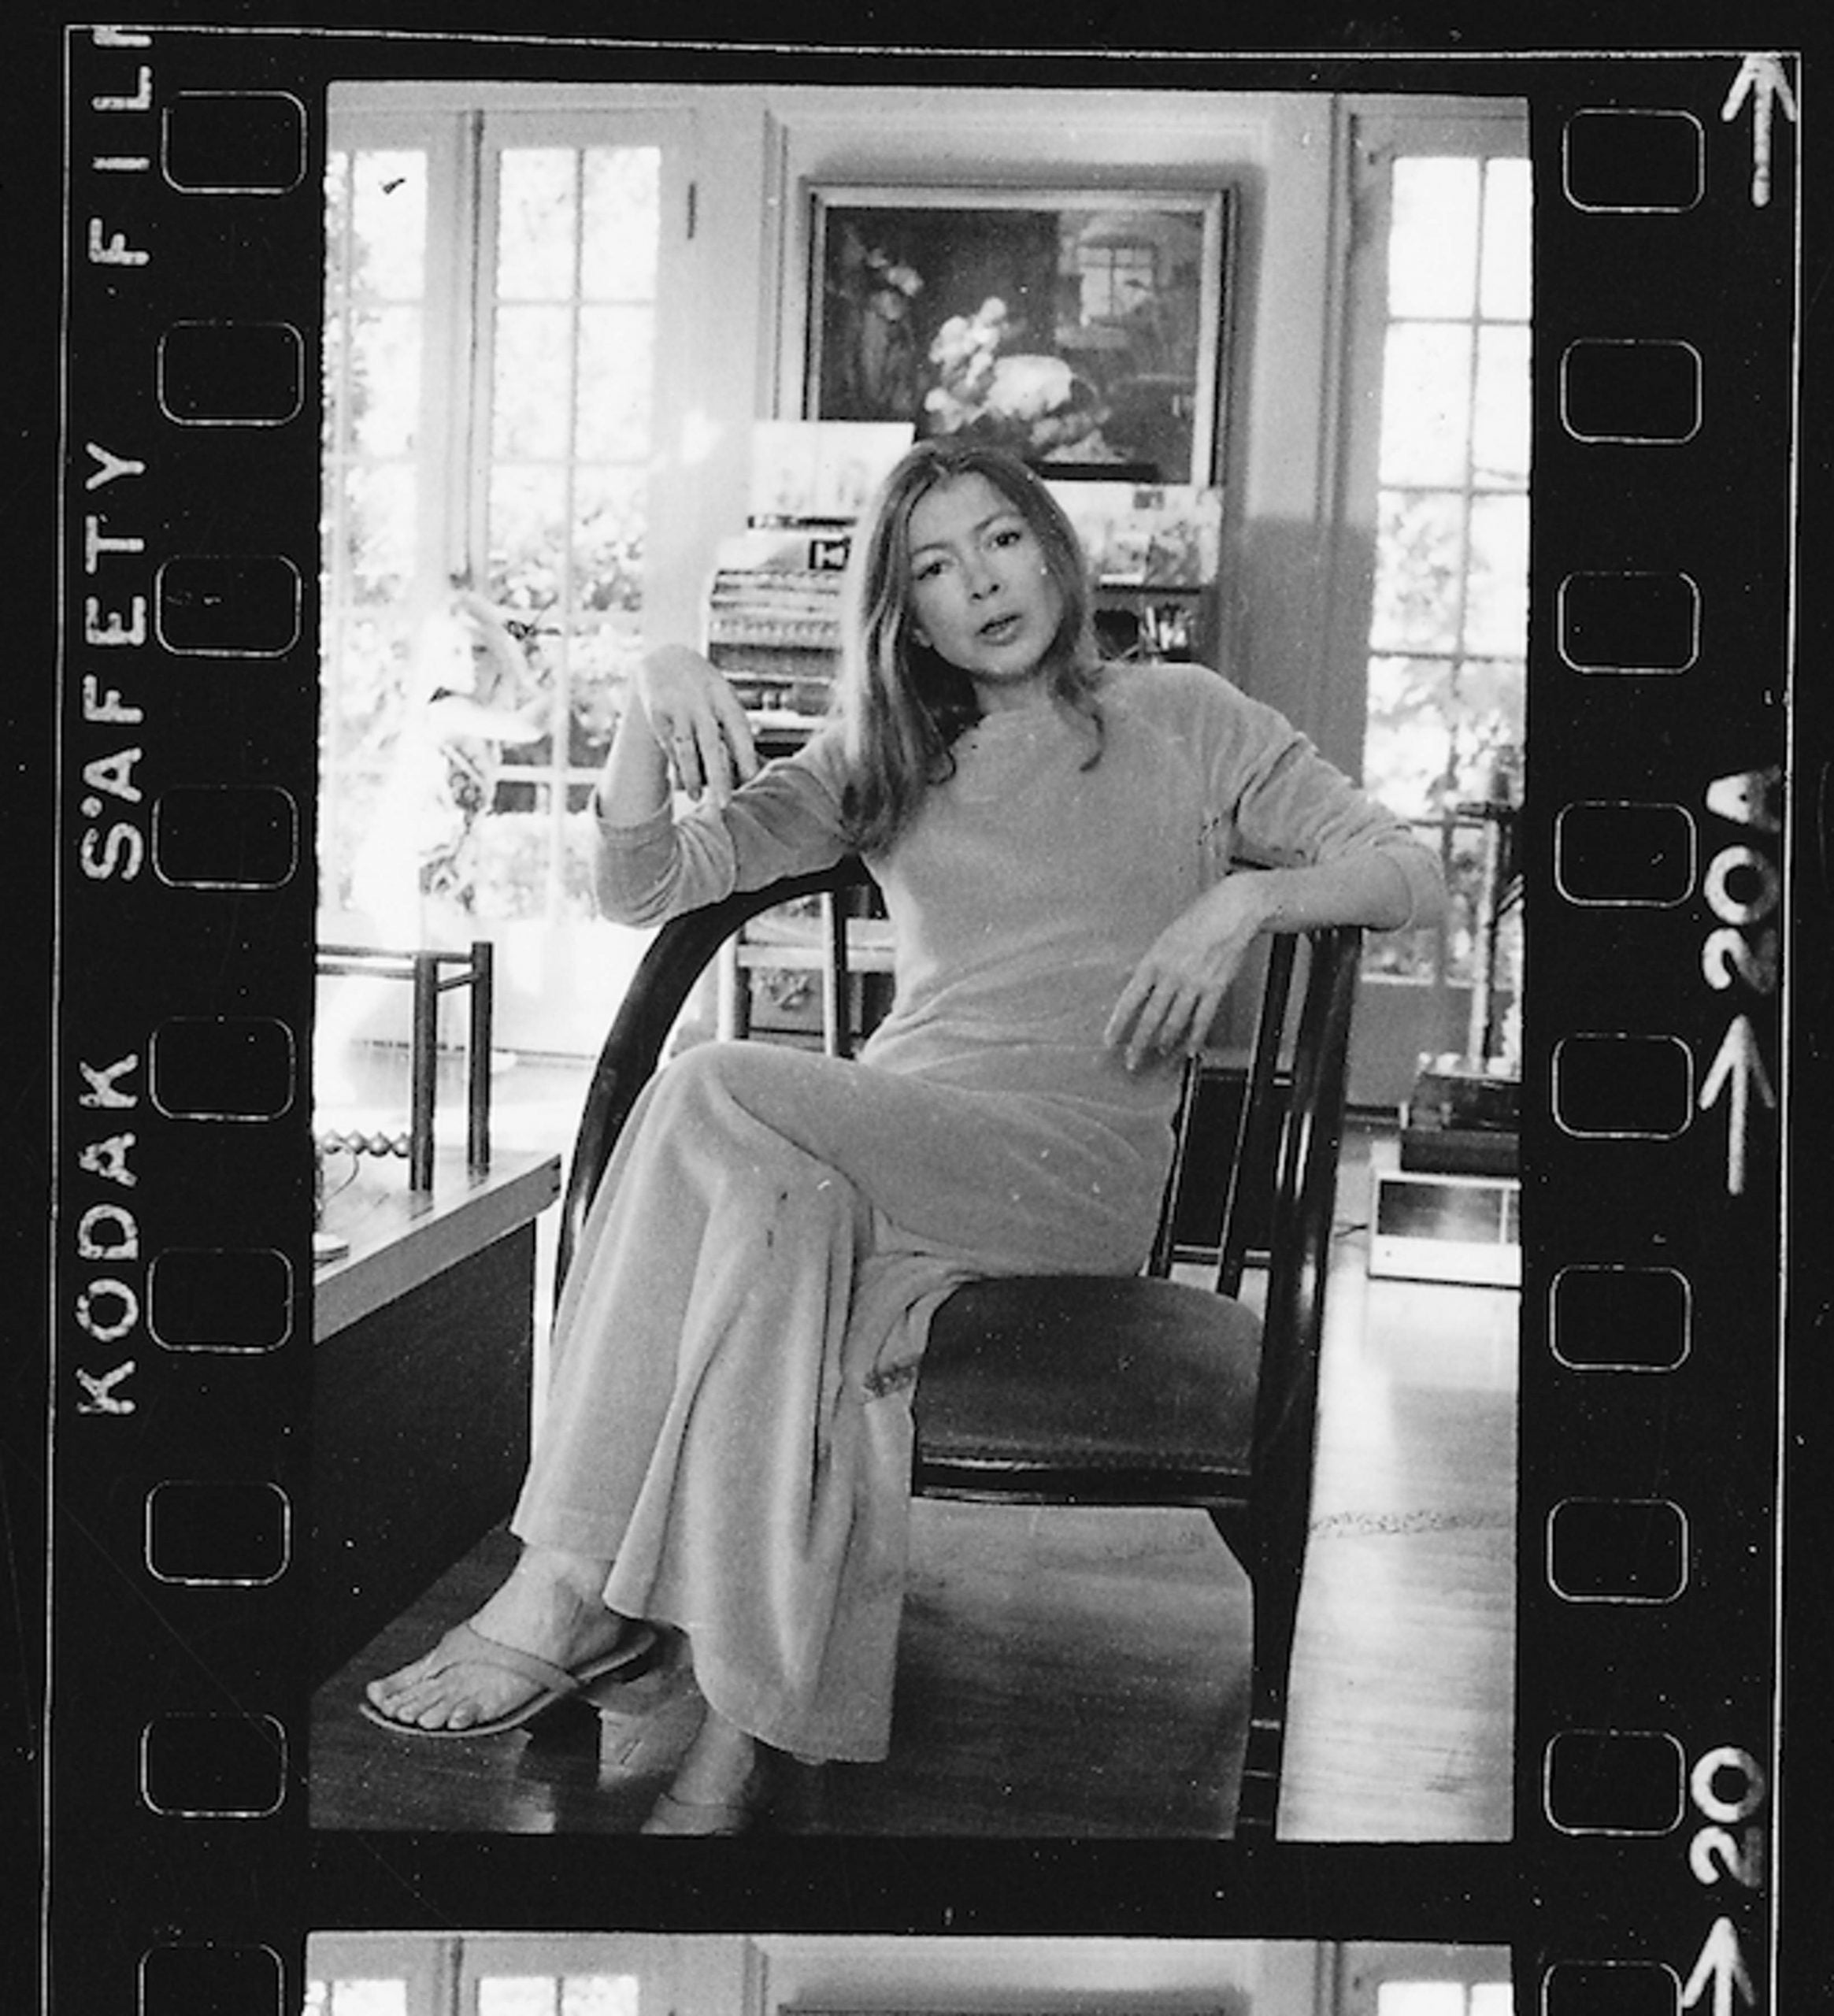 Joan Didion on Netflix tells the stories we already know – and some we don't